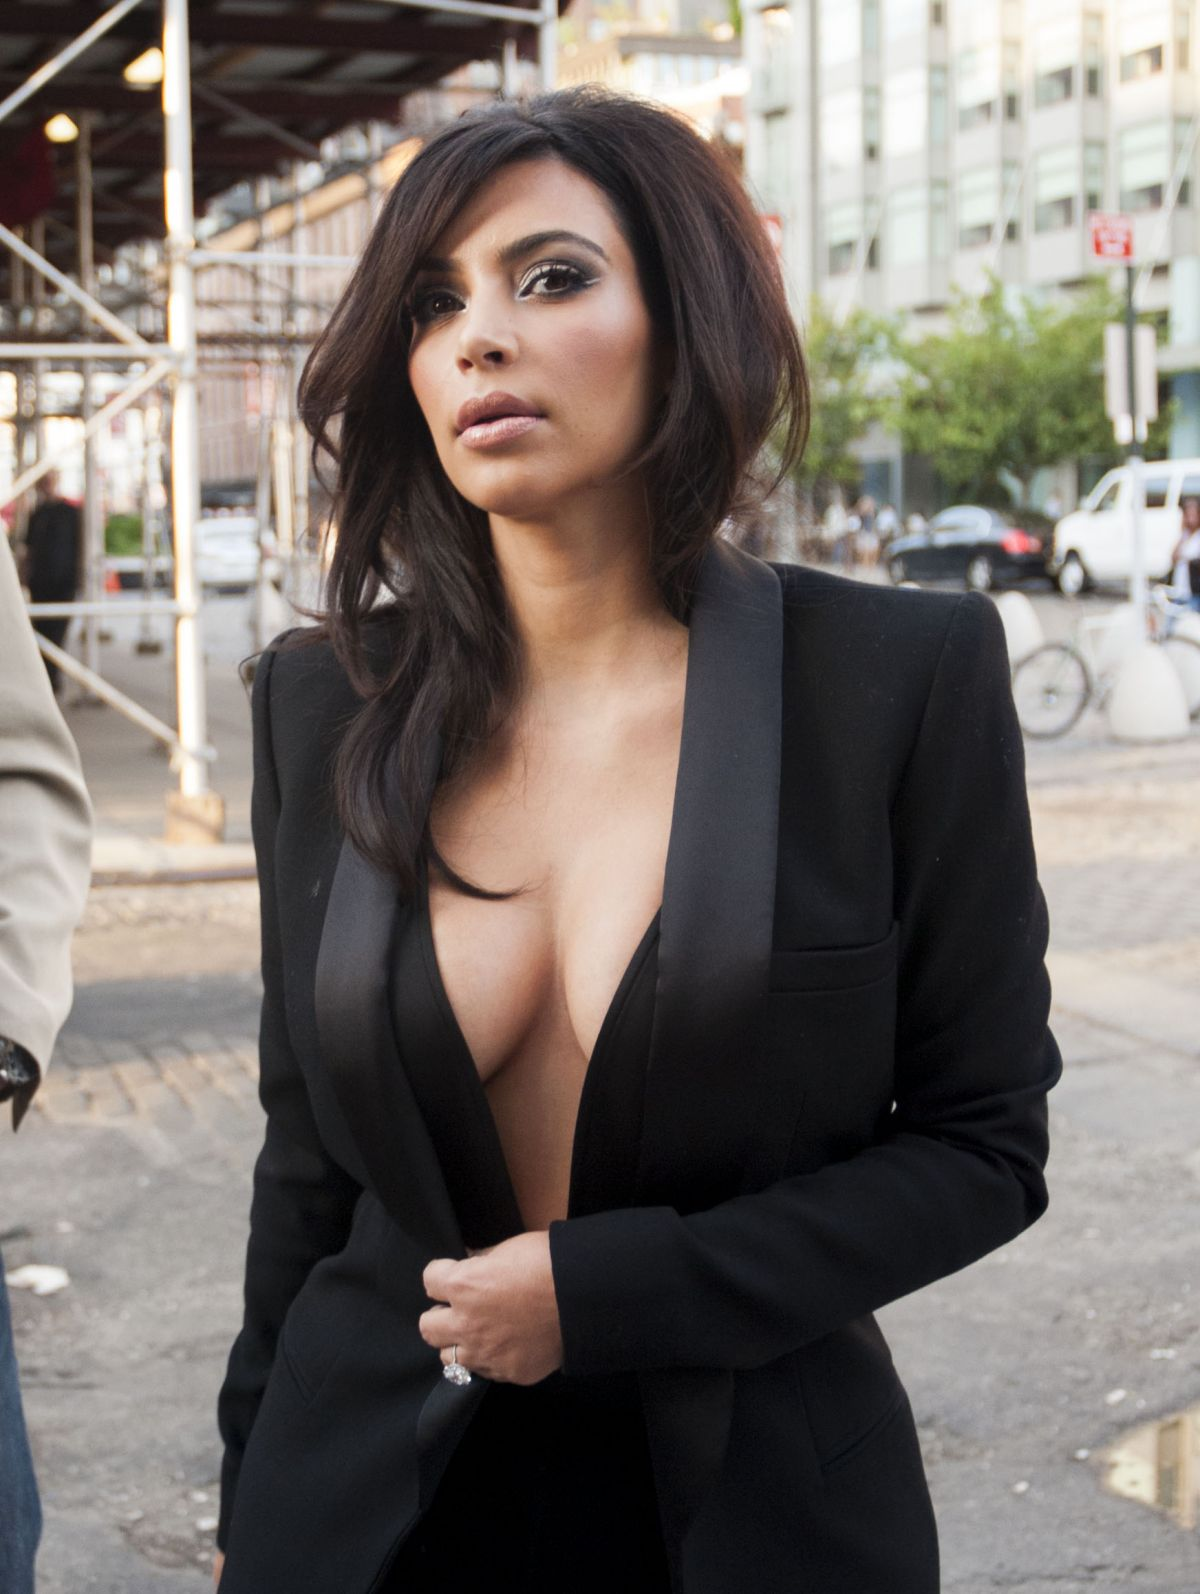 KIM KARDASHIAN Out and About in New York 1606